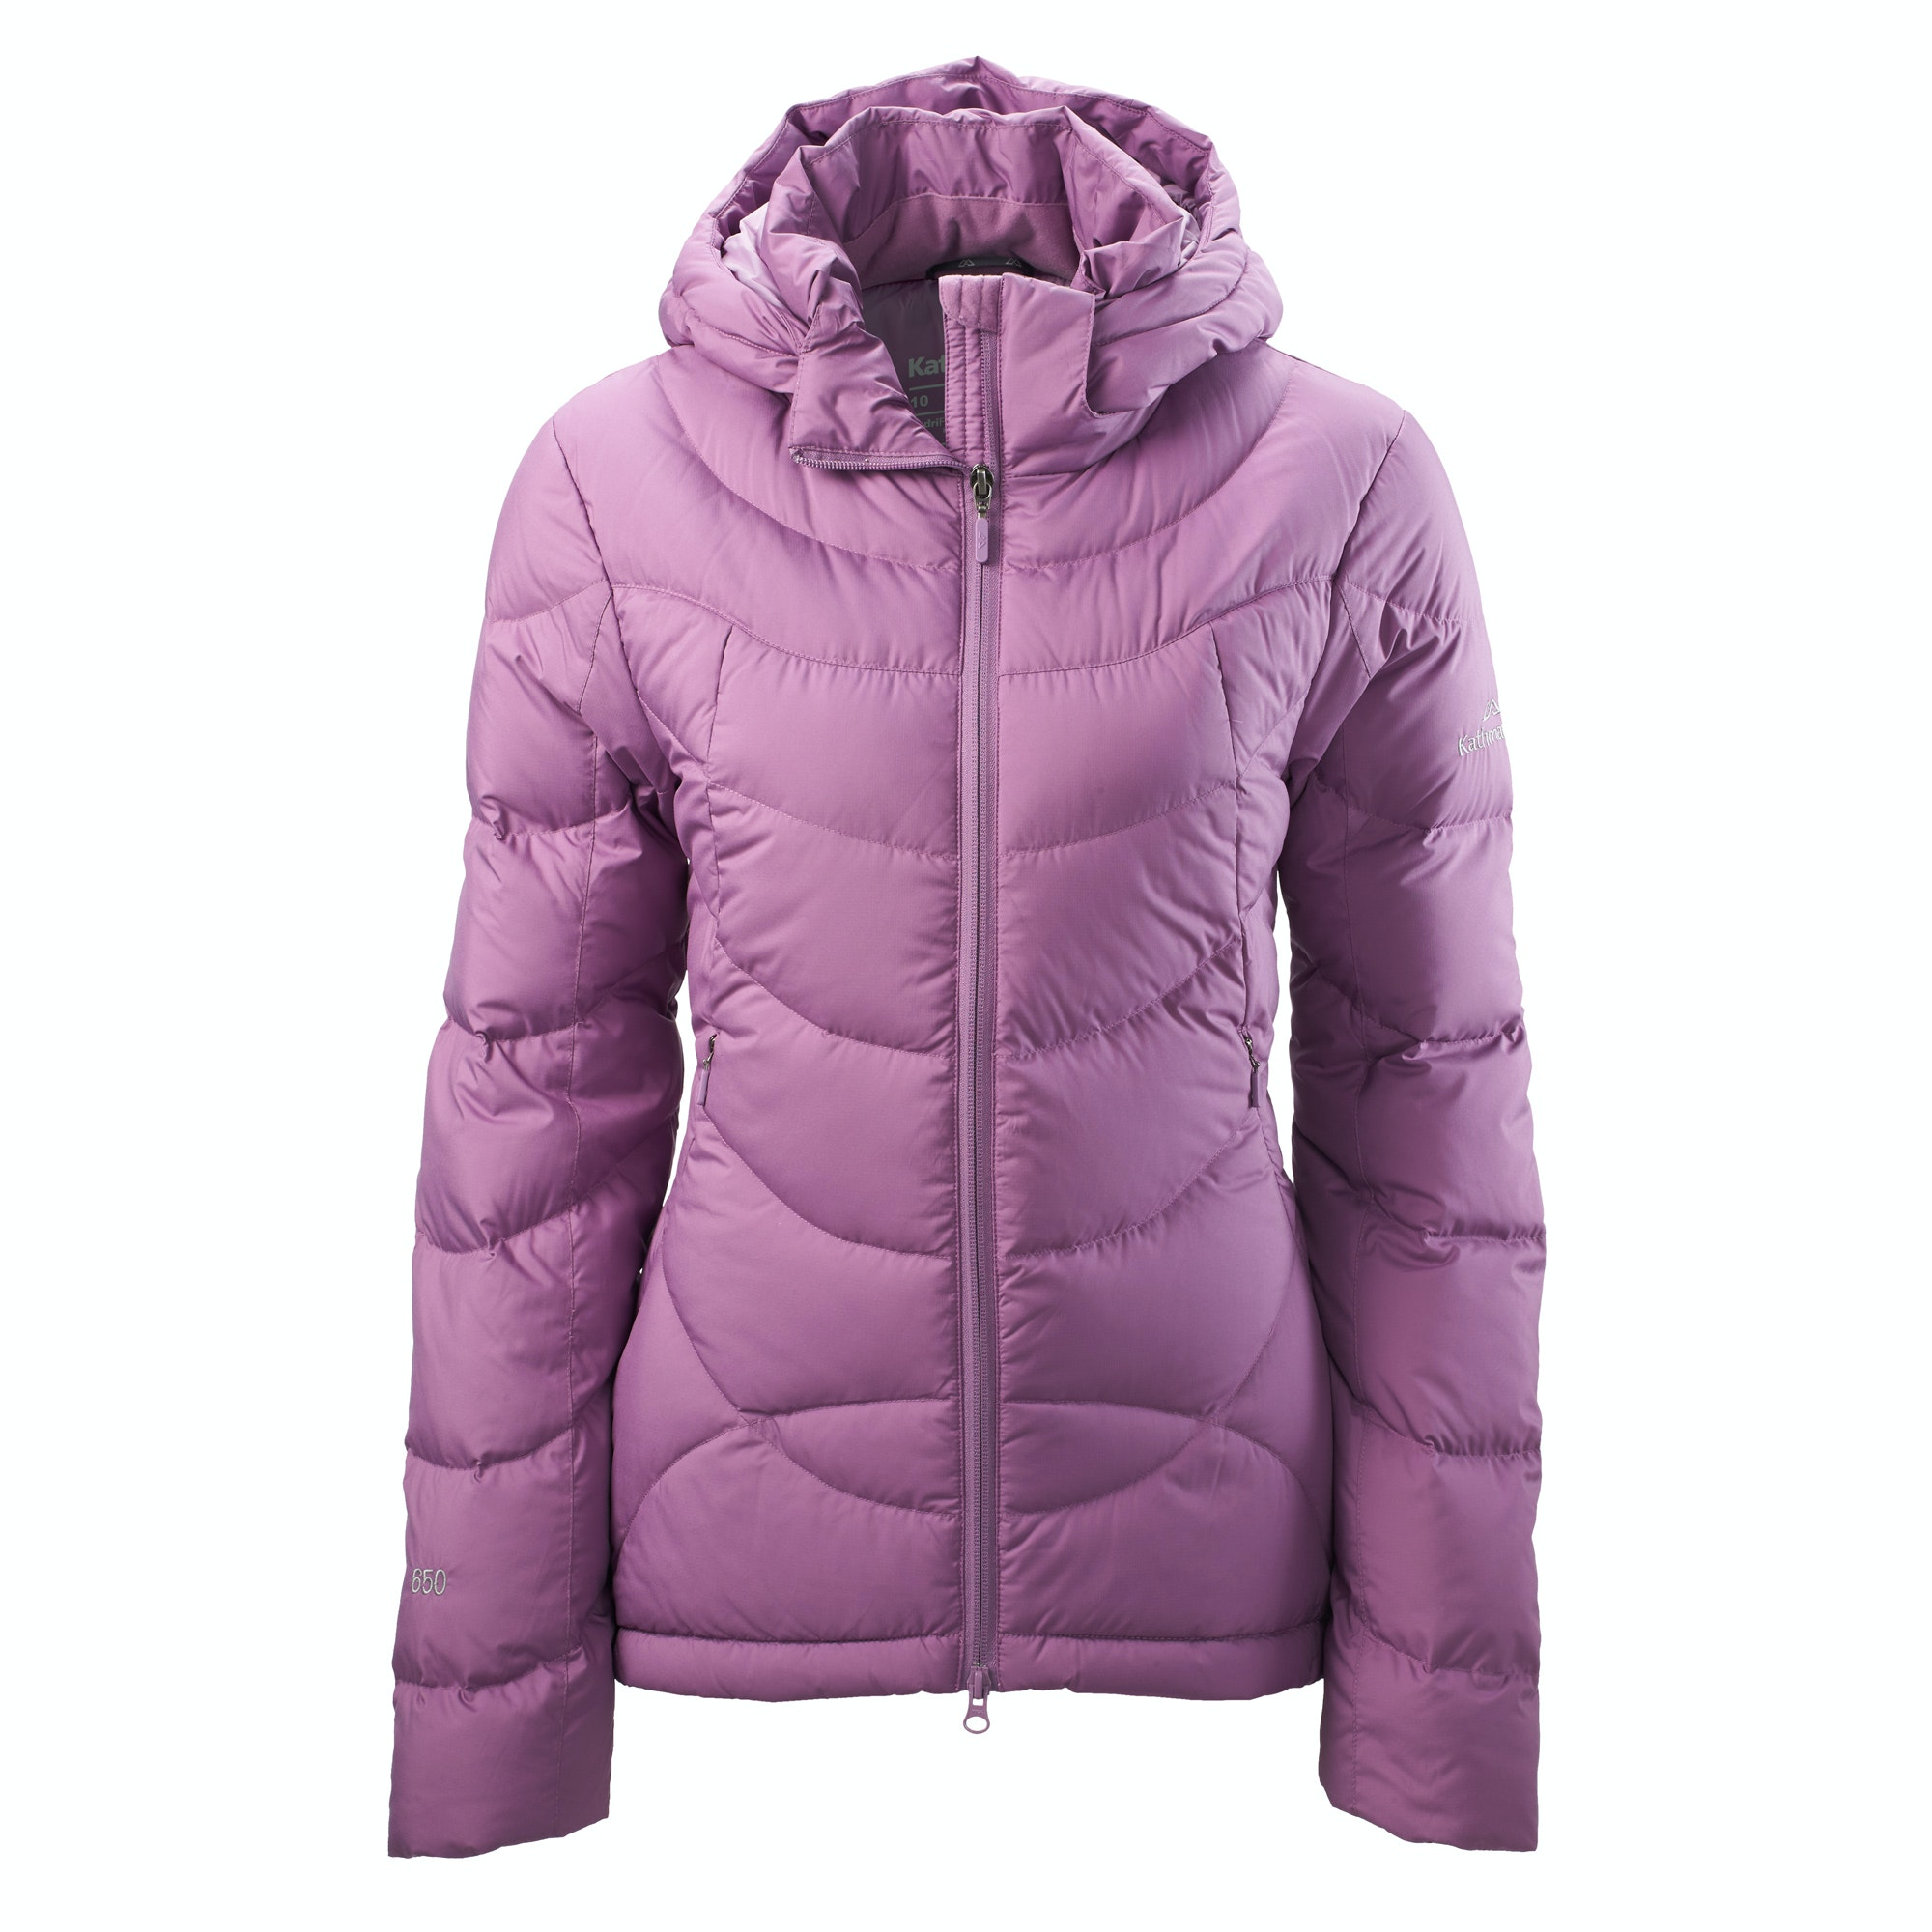 Shop the best selection of women's down jackets at manakamanamobilecenter.tk, where you'll find premium outdoor gear and clothing and experts to guide you through selection. Canada Goose Camp Down Hoodie - Women's. $ 3 colors available. 5 5 1. Mountain Hardwear Ghost Whisperer Reversible Jacket - Women's. $